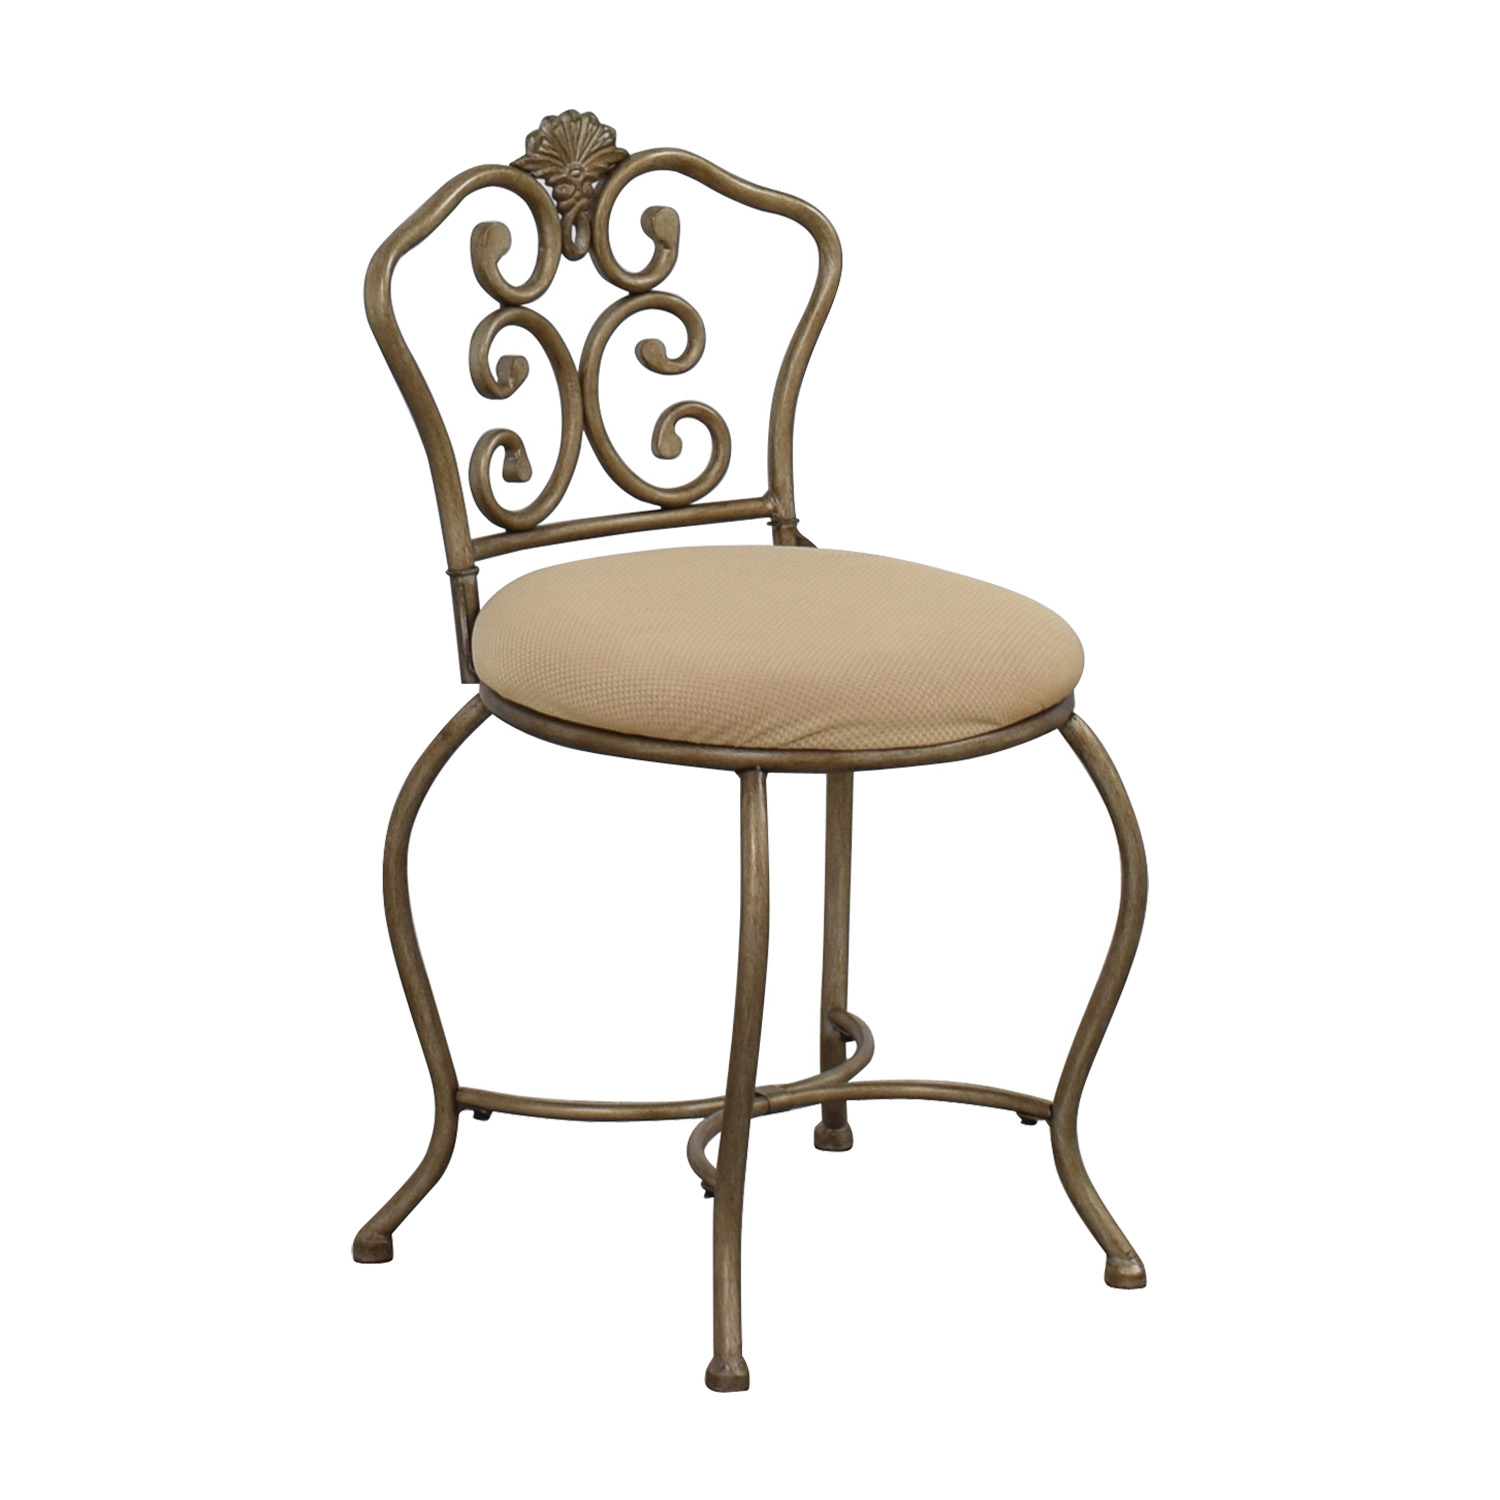 Tan Seat with Silver Frame Chair Accent Chairs